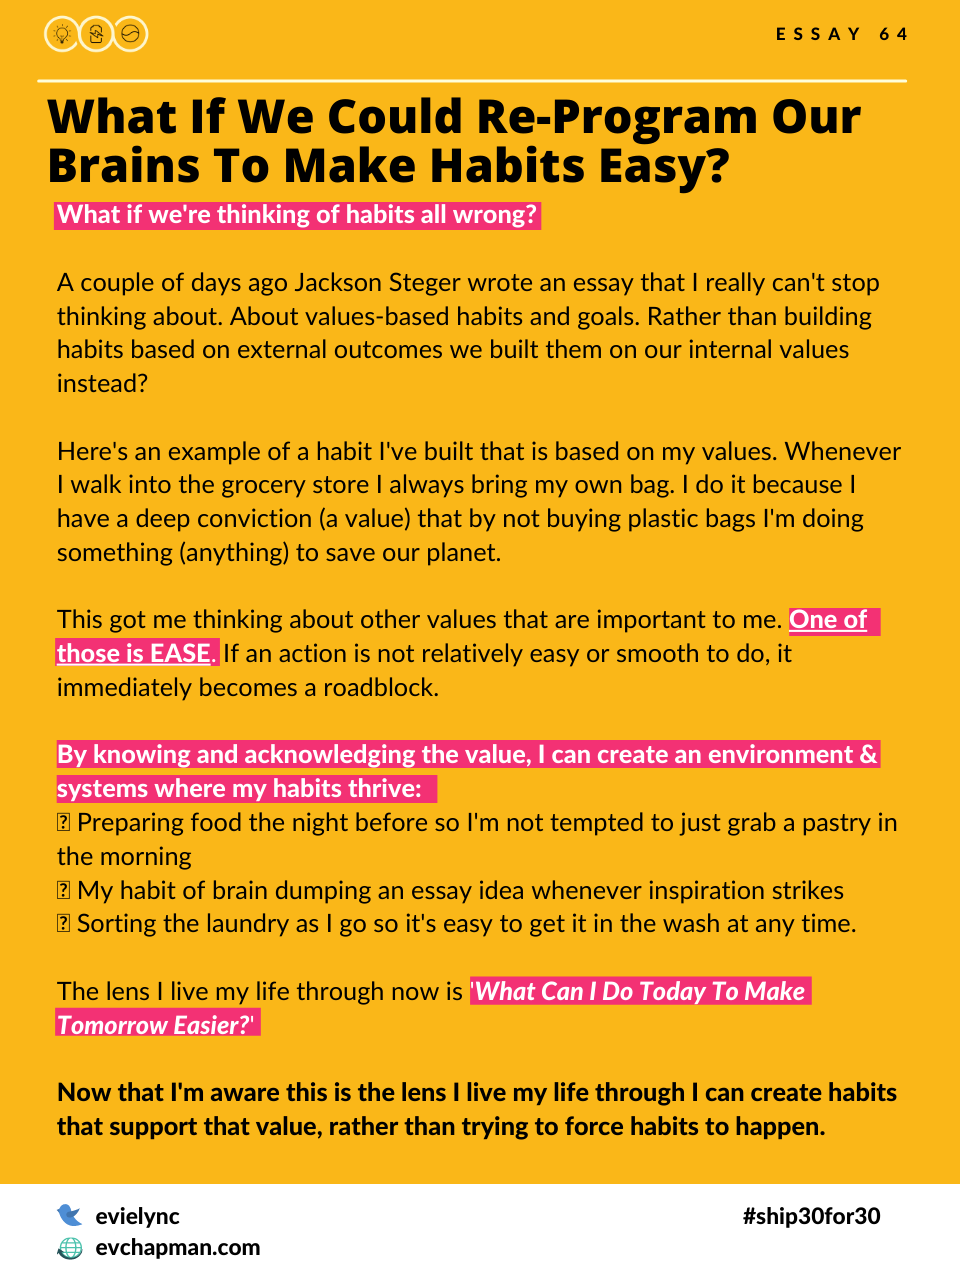 What If We Could Re-Program Our Brains To Make Habits Easy?